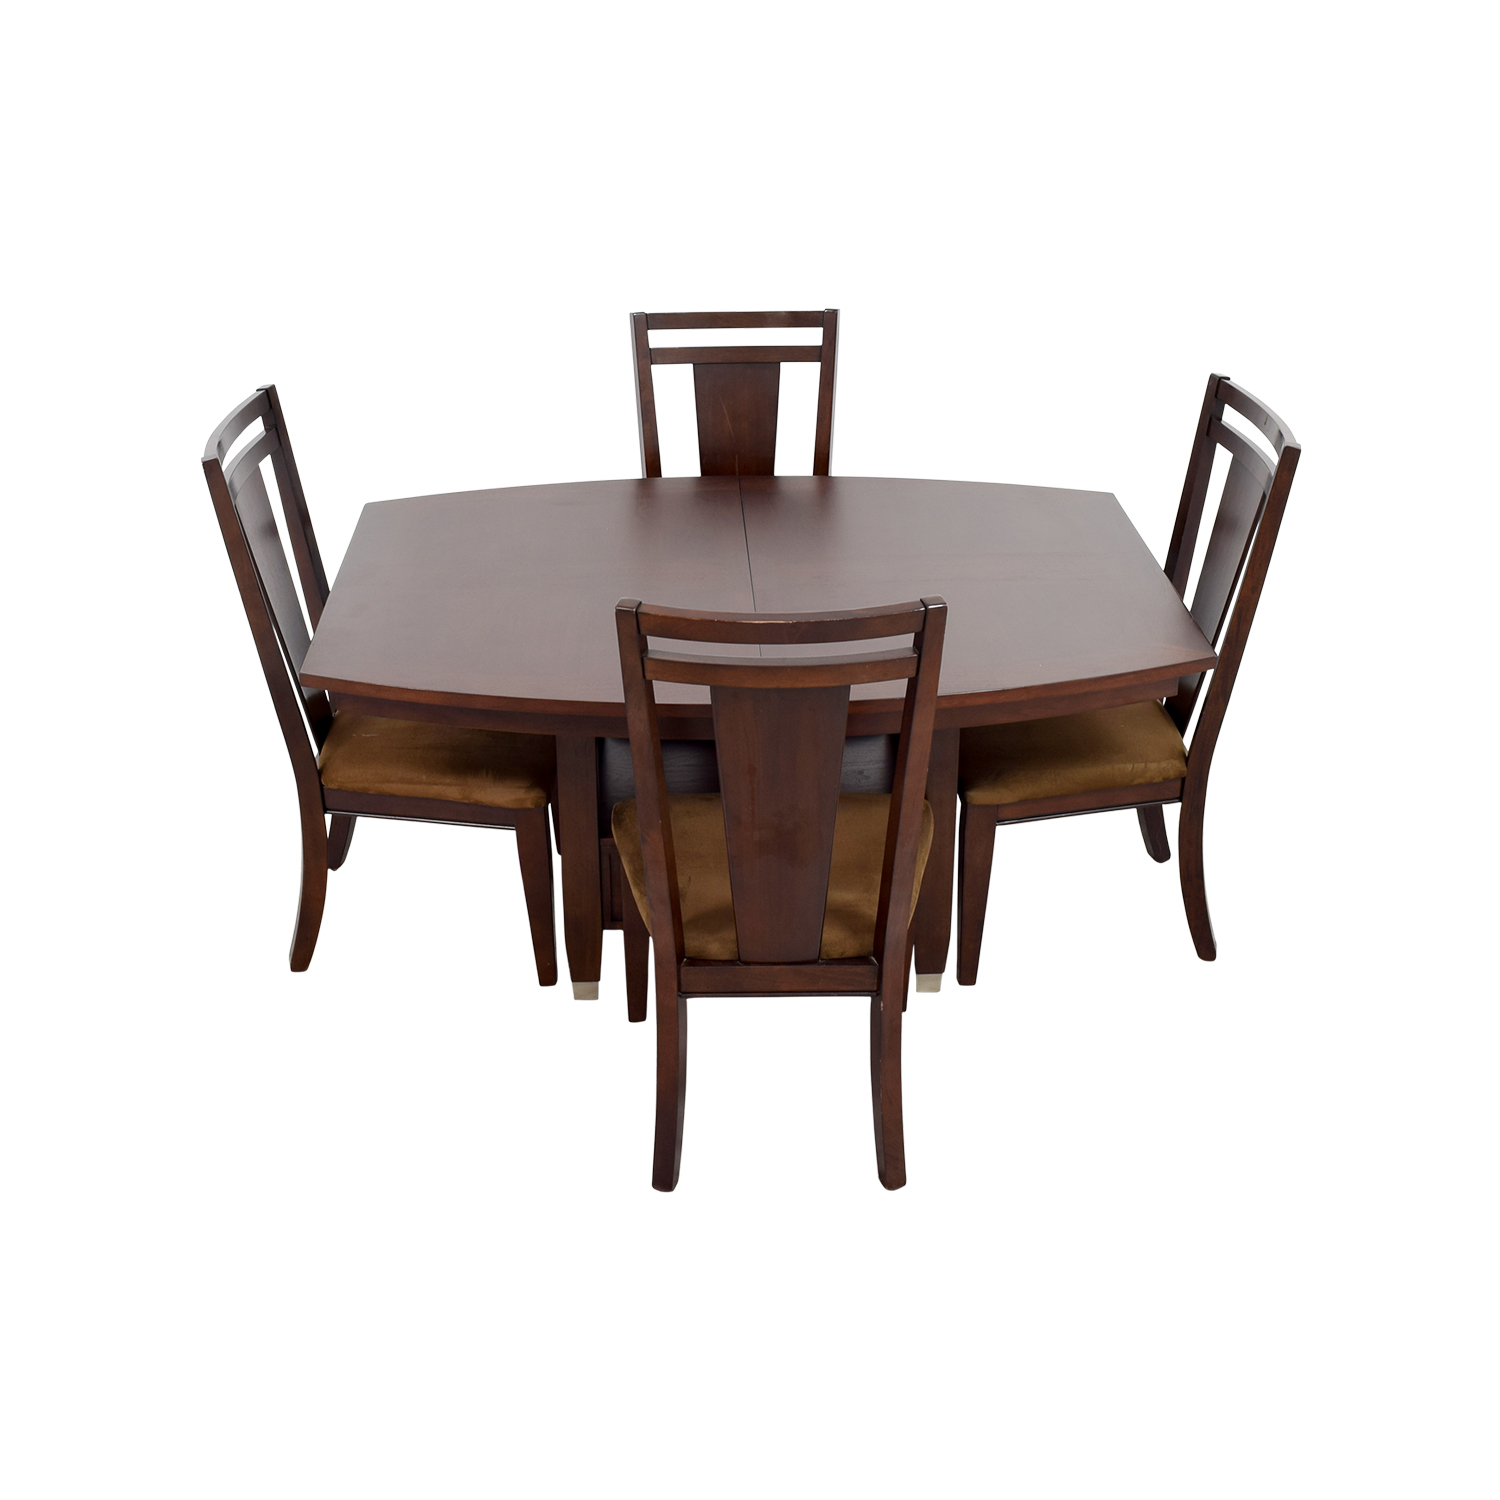 Broyhill Wood Dining Table Set sale